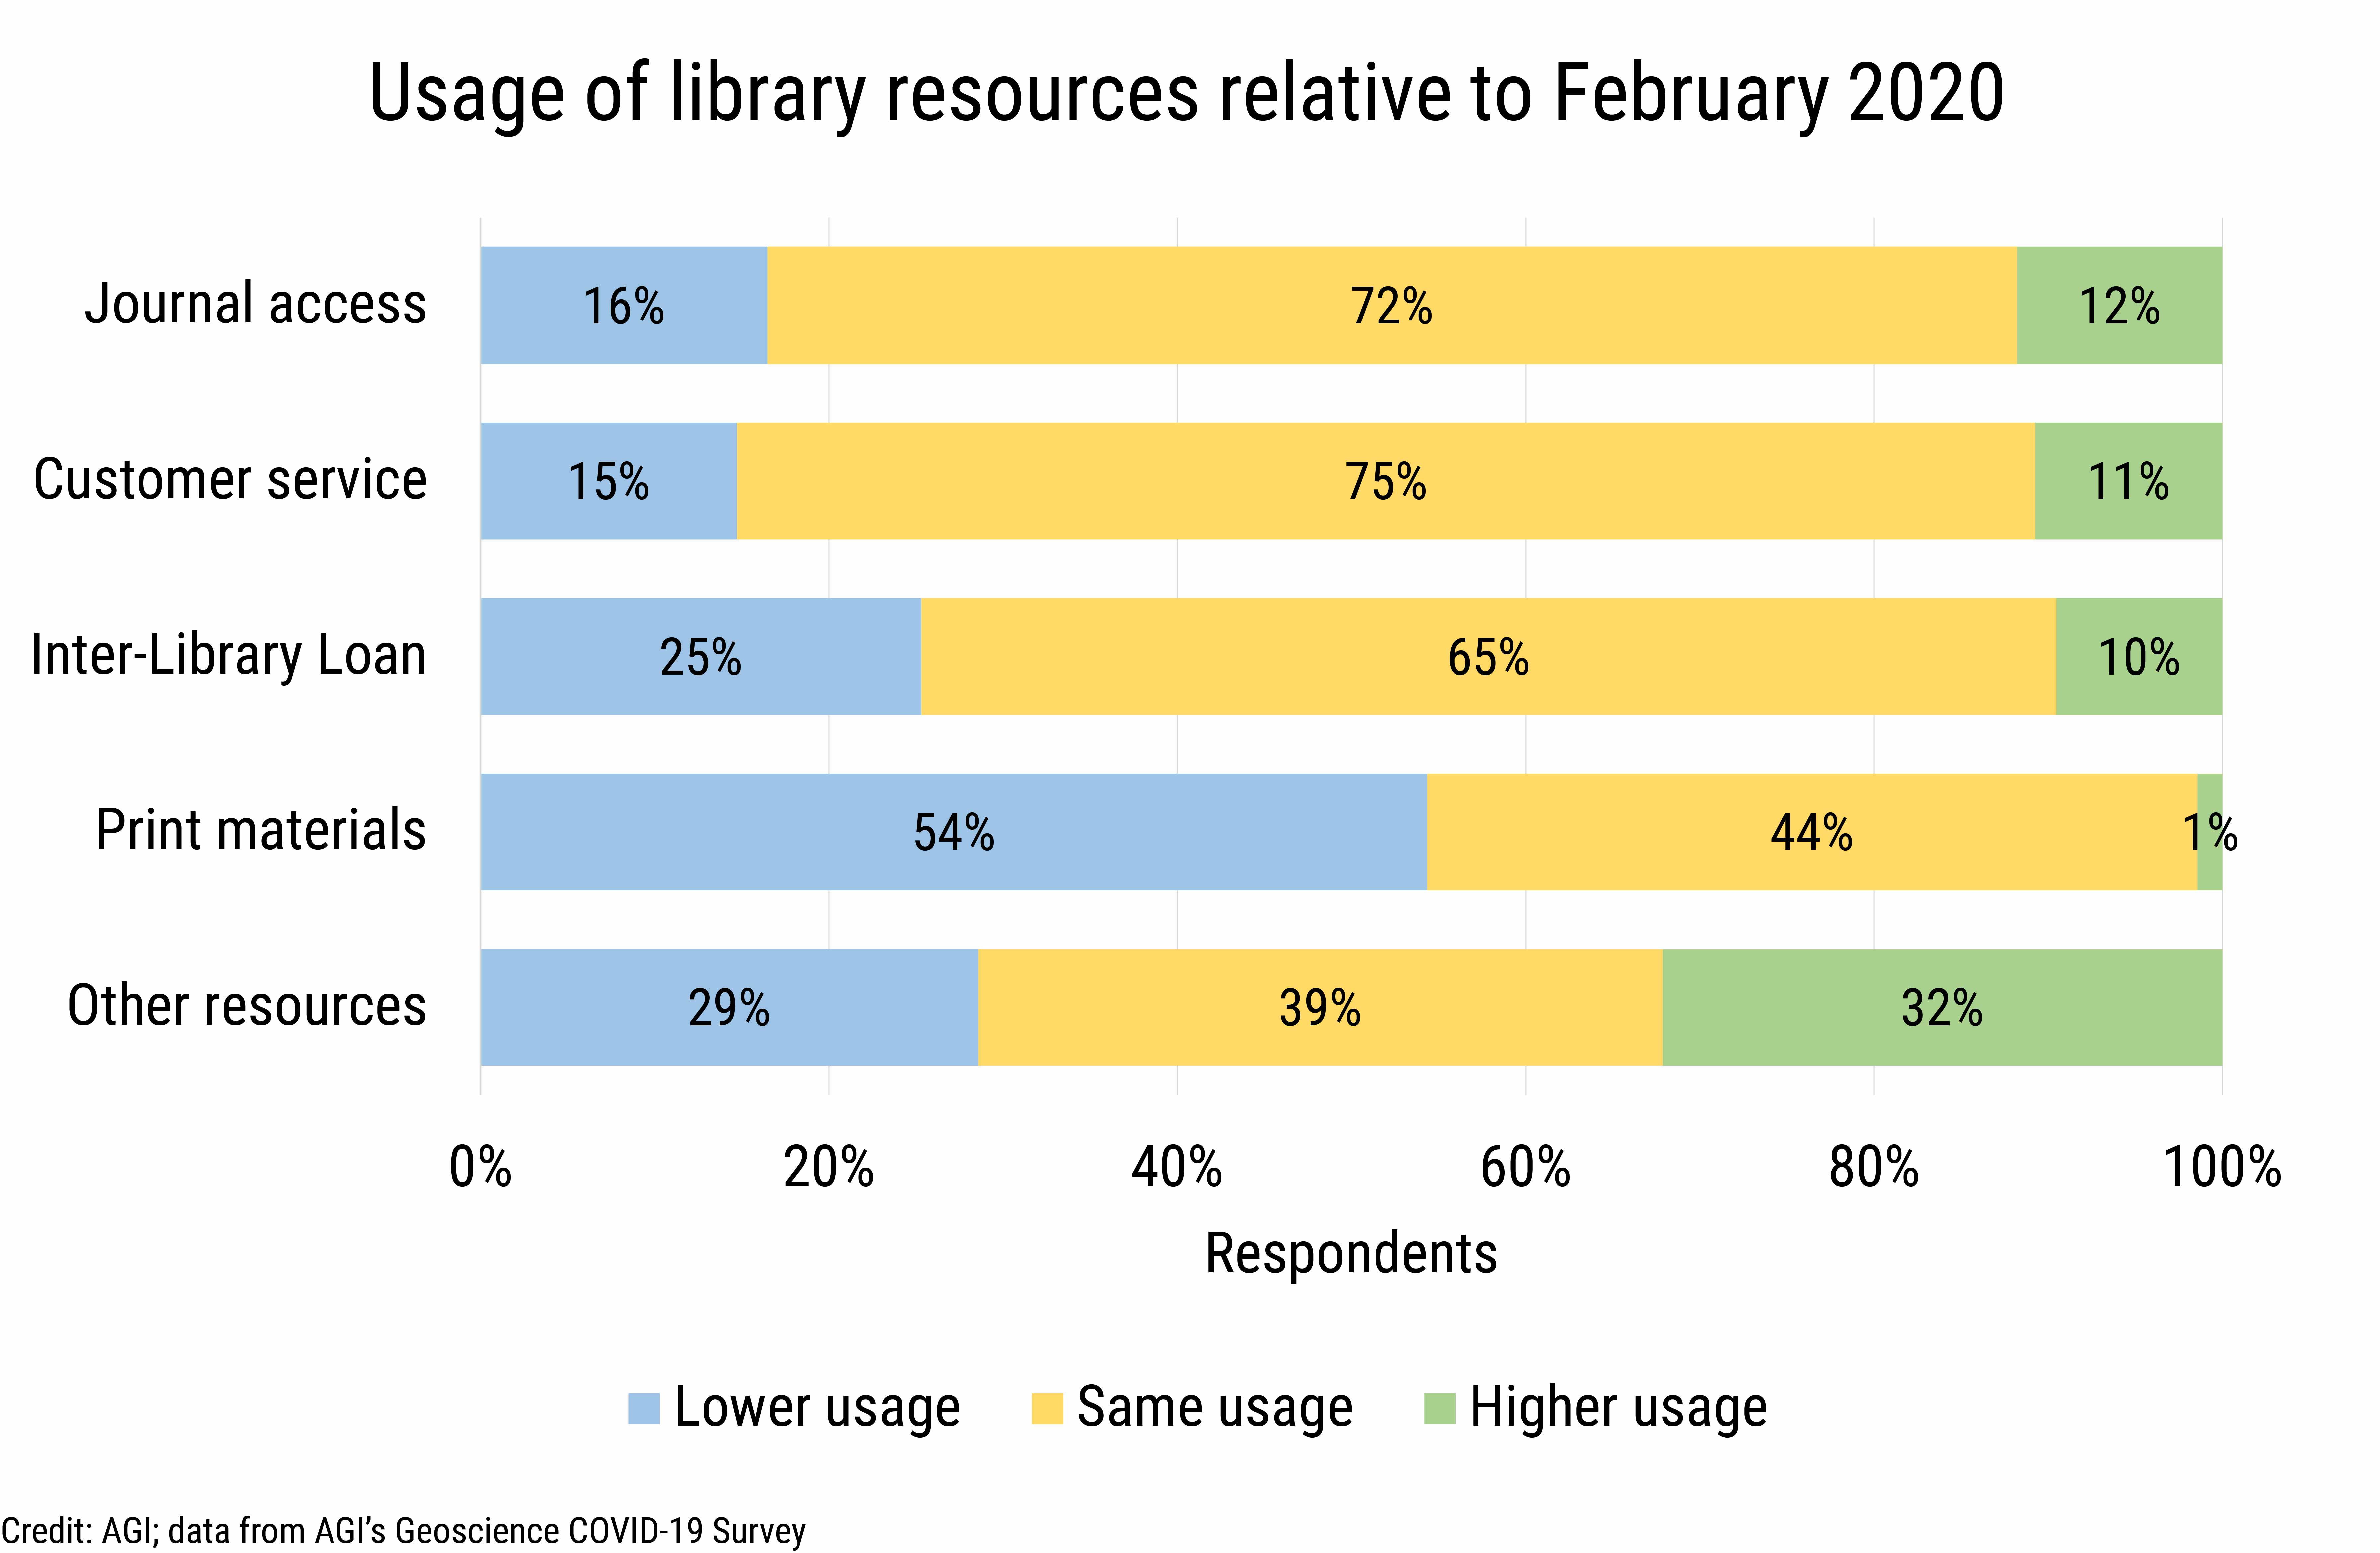 DB_2020-026 chart 02: Library resource usage by type (Credit: AGI; data from AGI's Geoscience COVID-19 Survey)